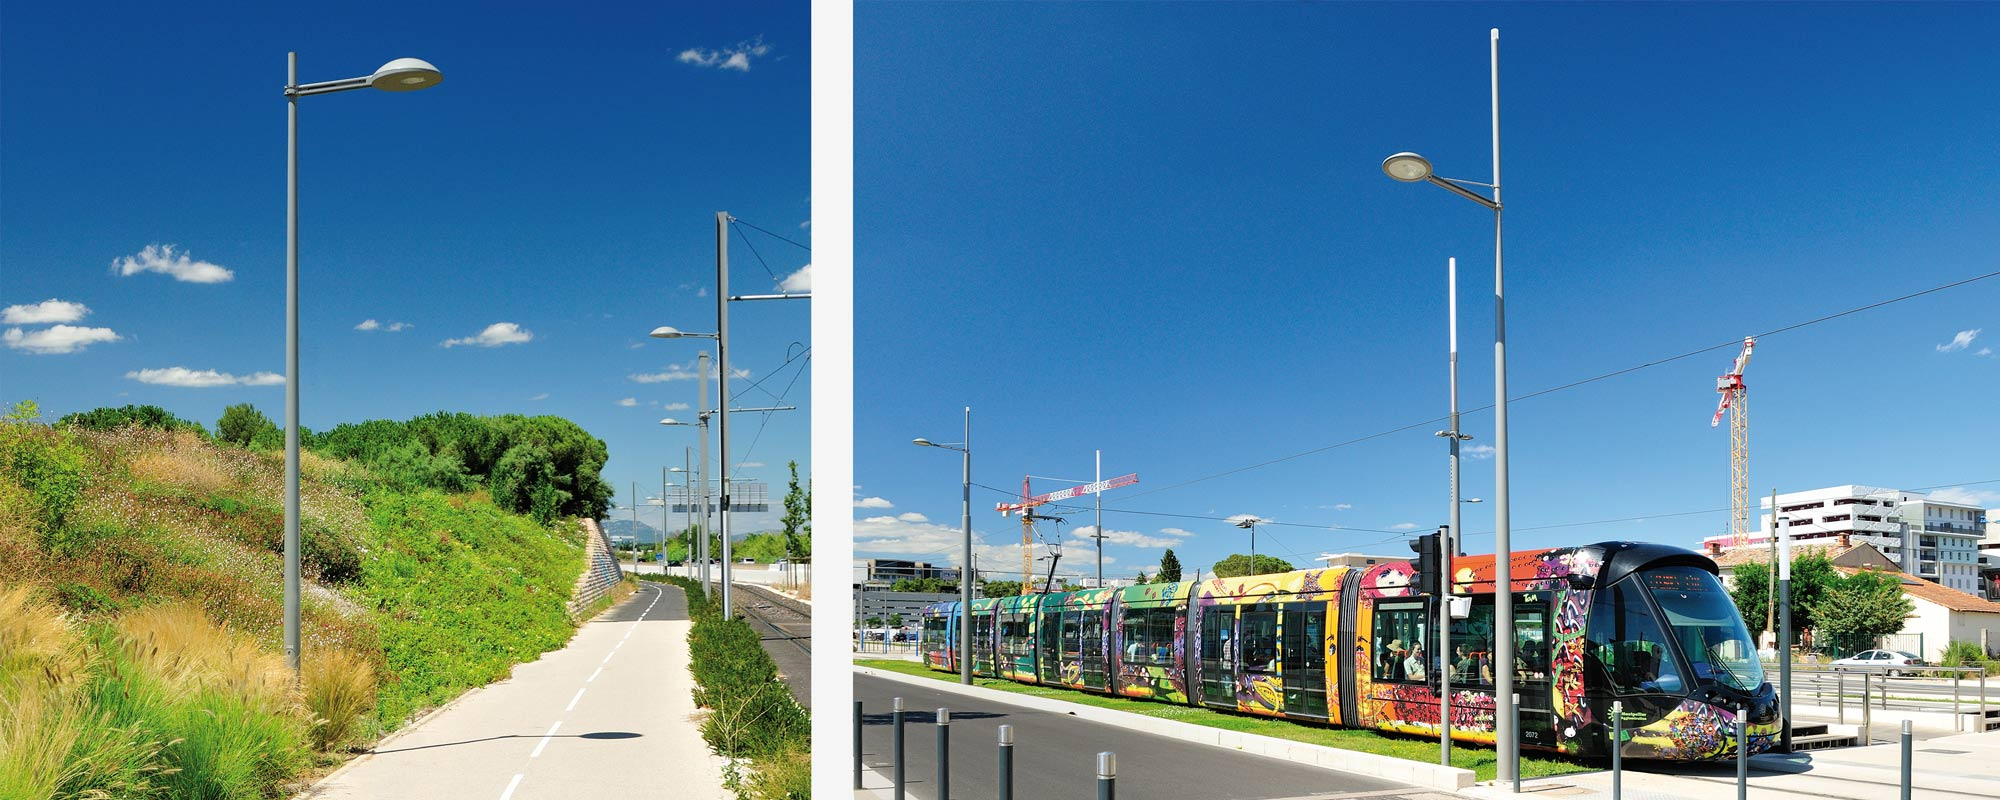 D_Montpellier_Tramway2